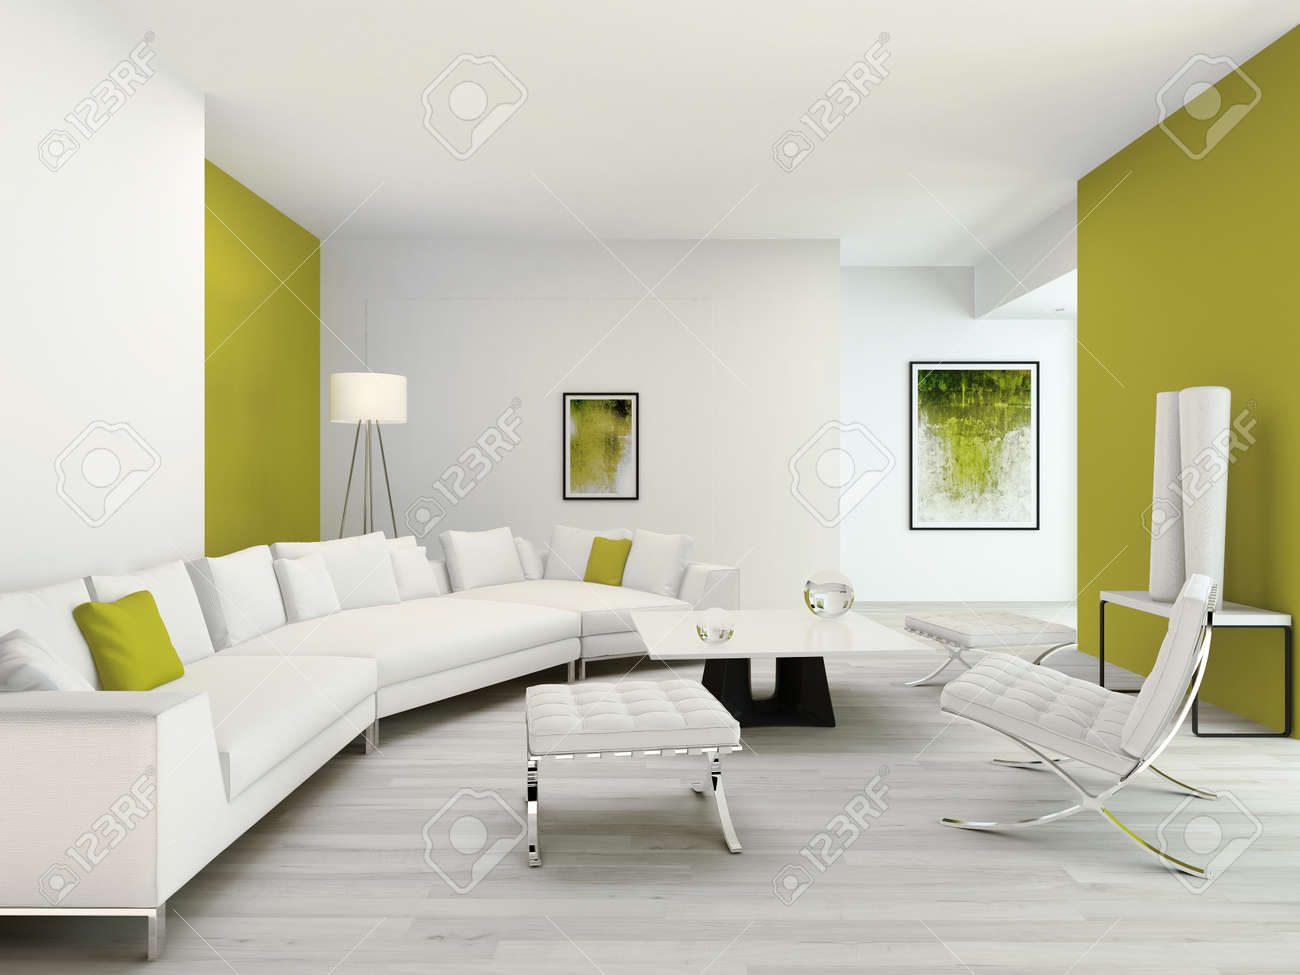 Pure Green And White Living Room Interior With Contemporary Modern ...